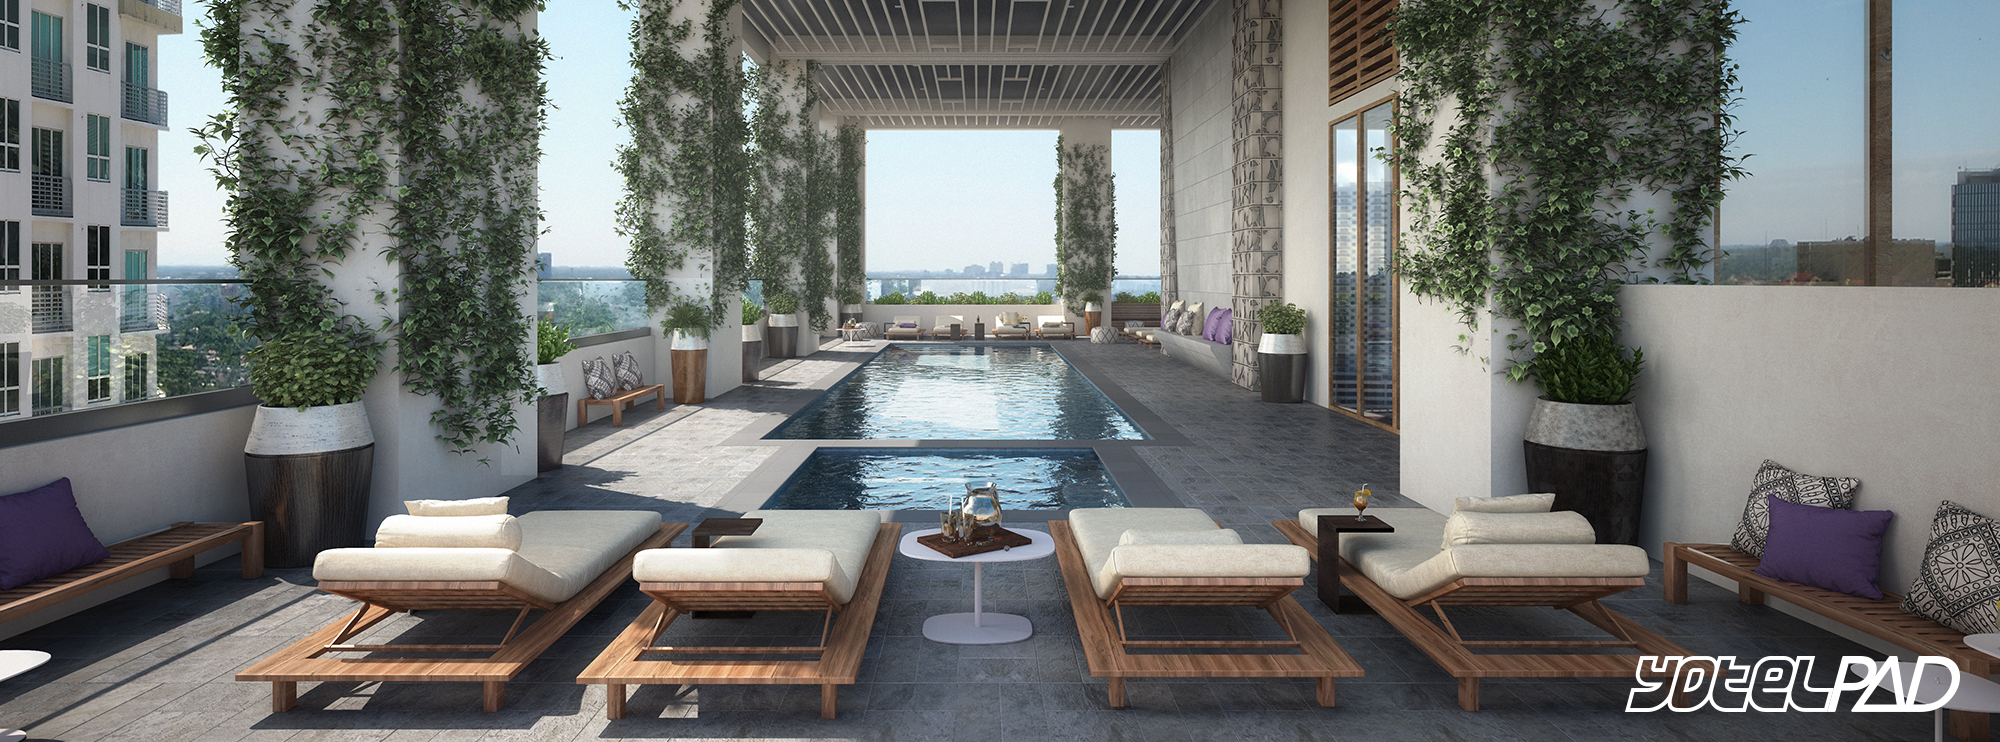 YotelPad_pool_OWP-site